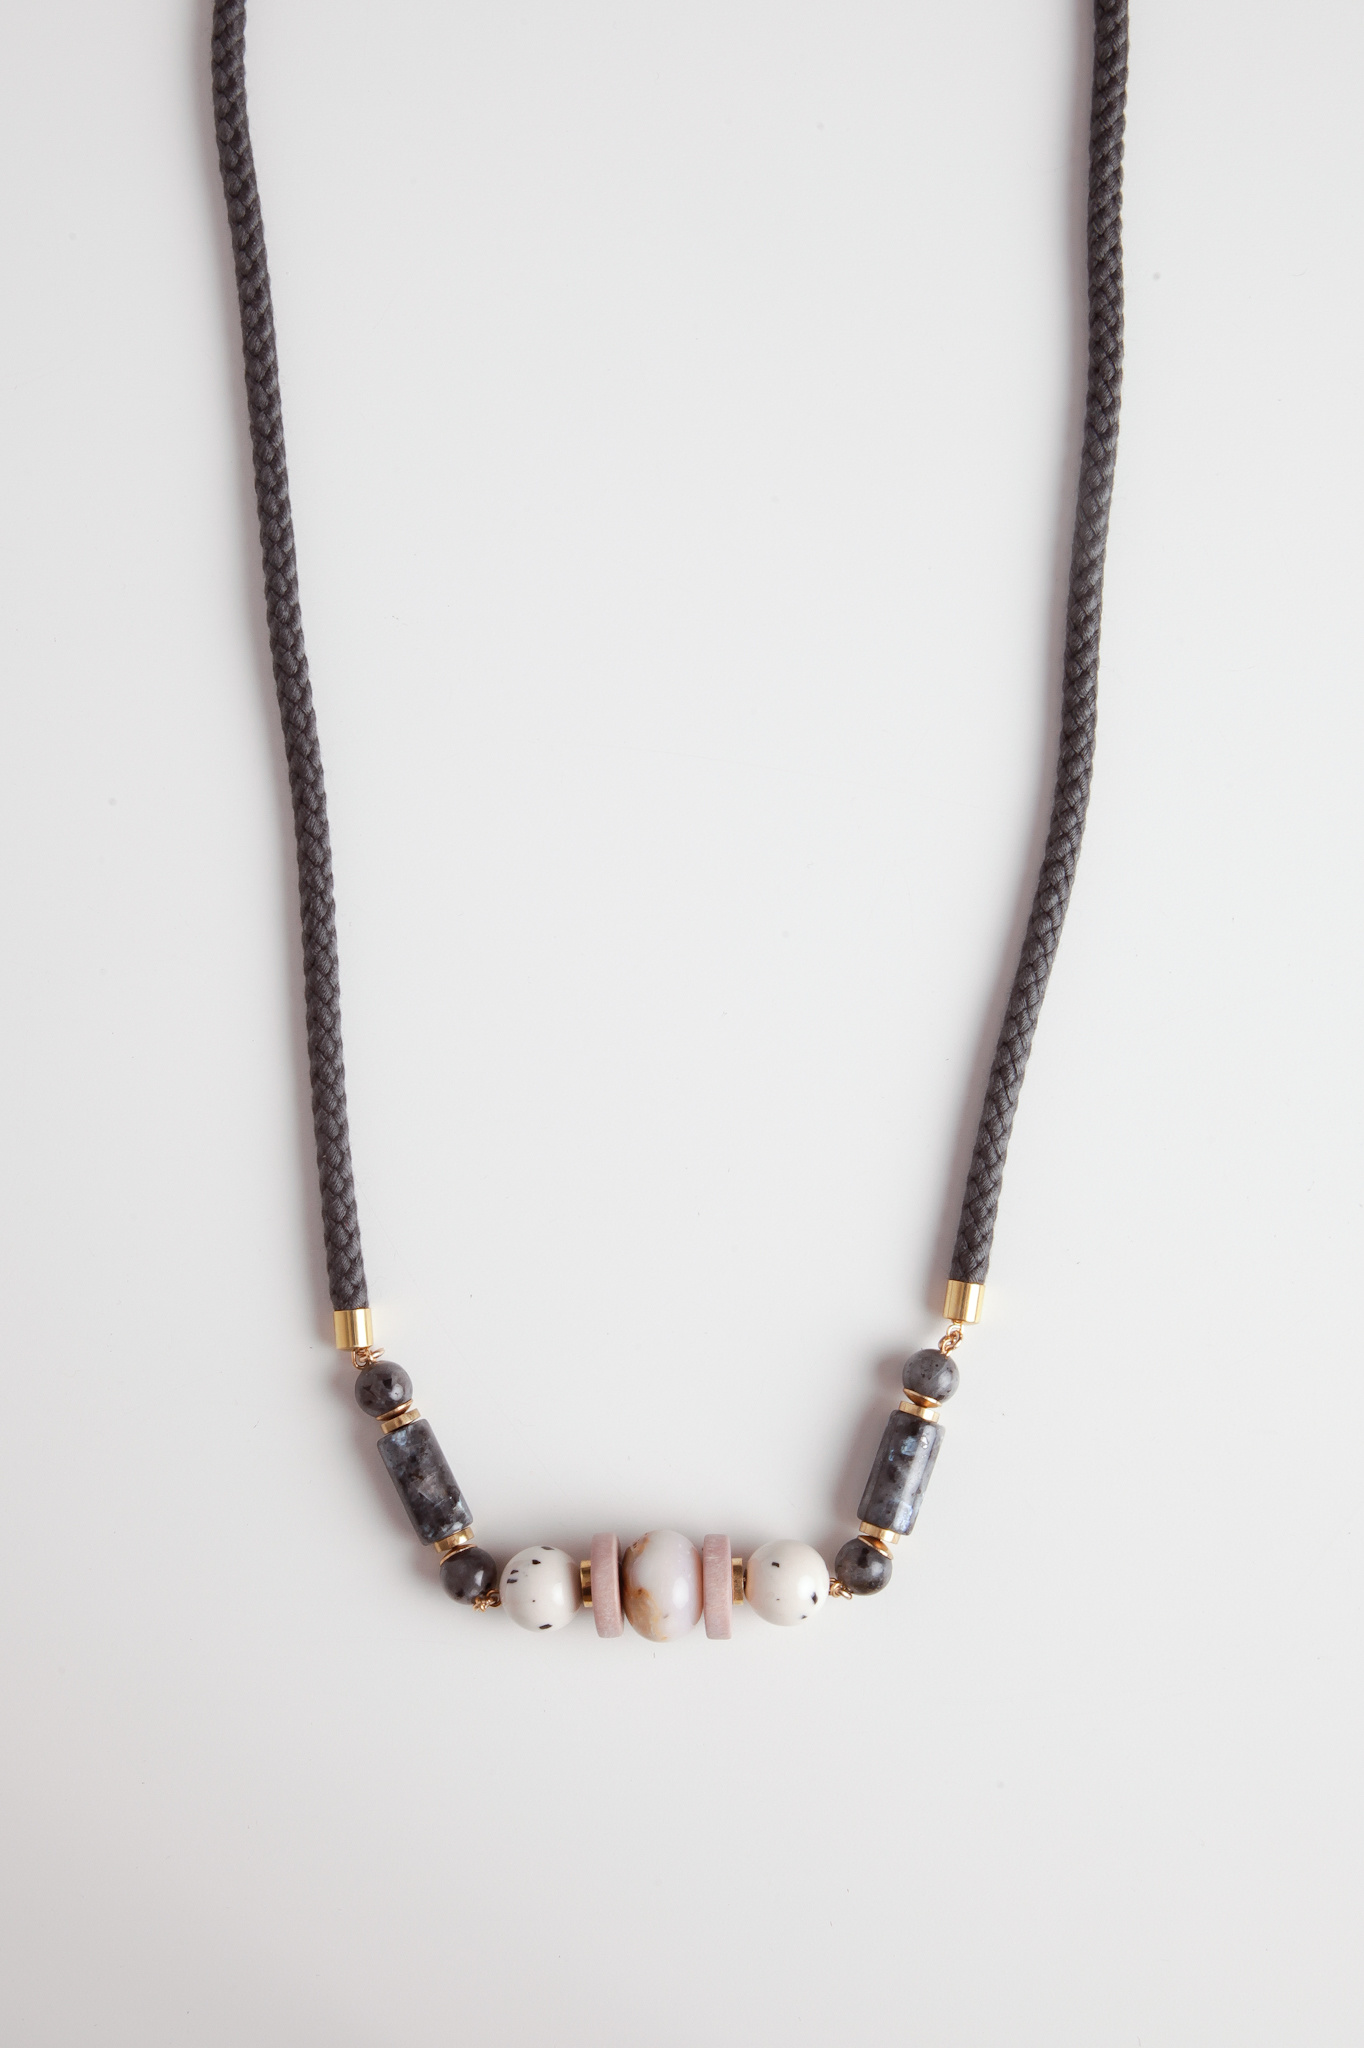 Braided Rope and Stone Necklace